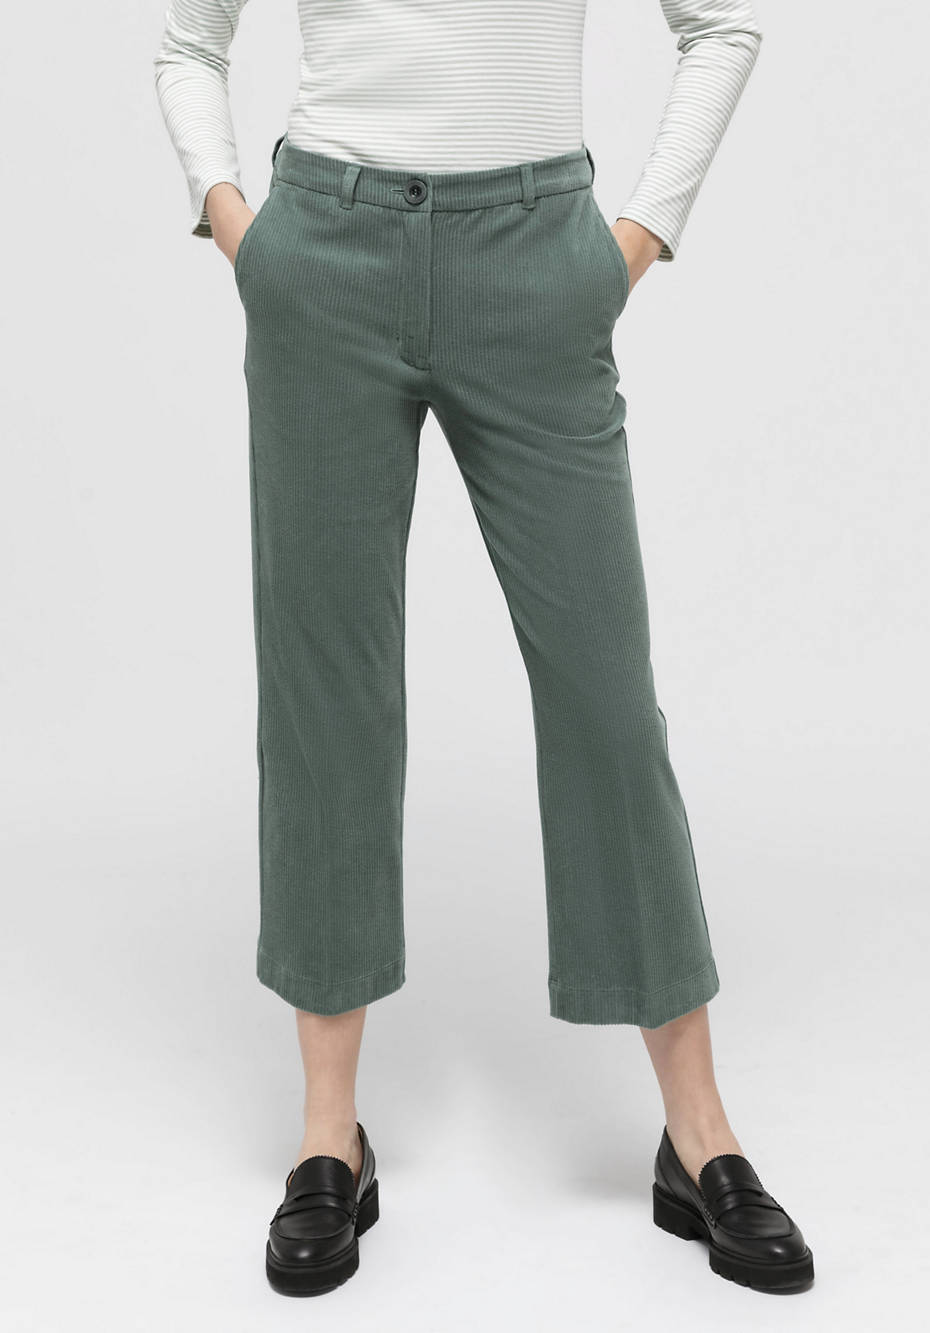 Corduroy trousers Cropped Flared made of pure organic cotton